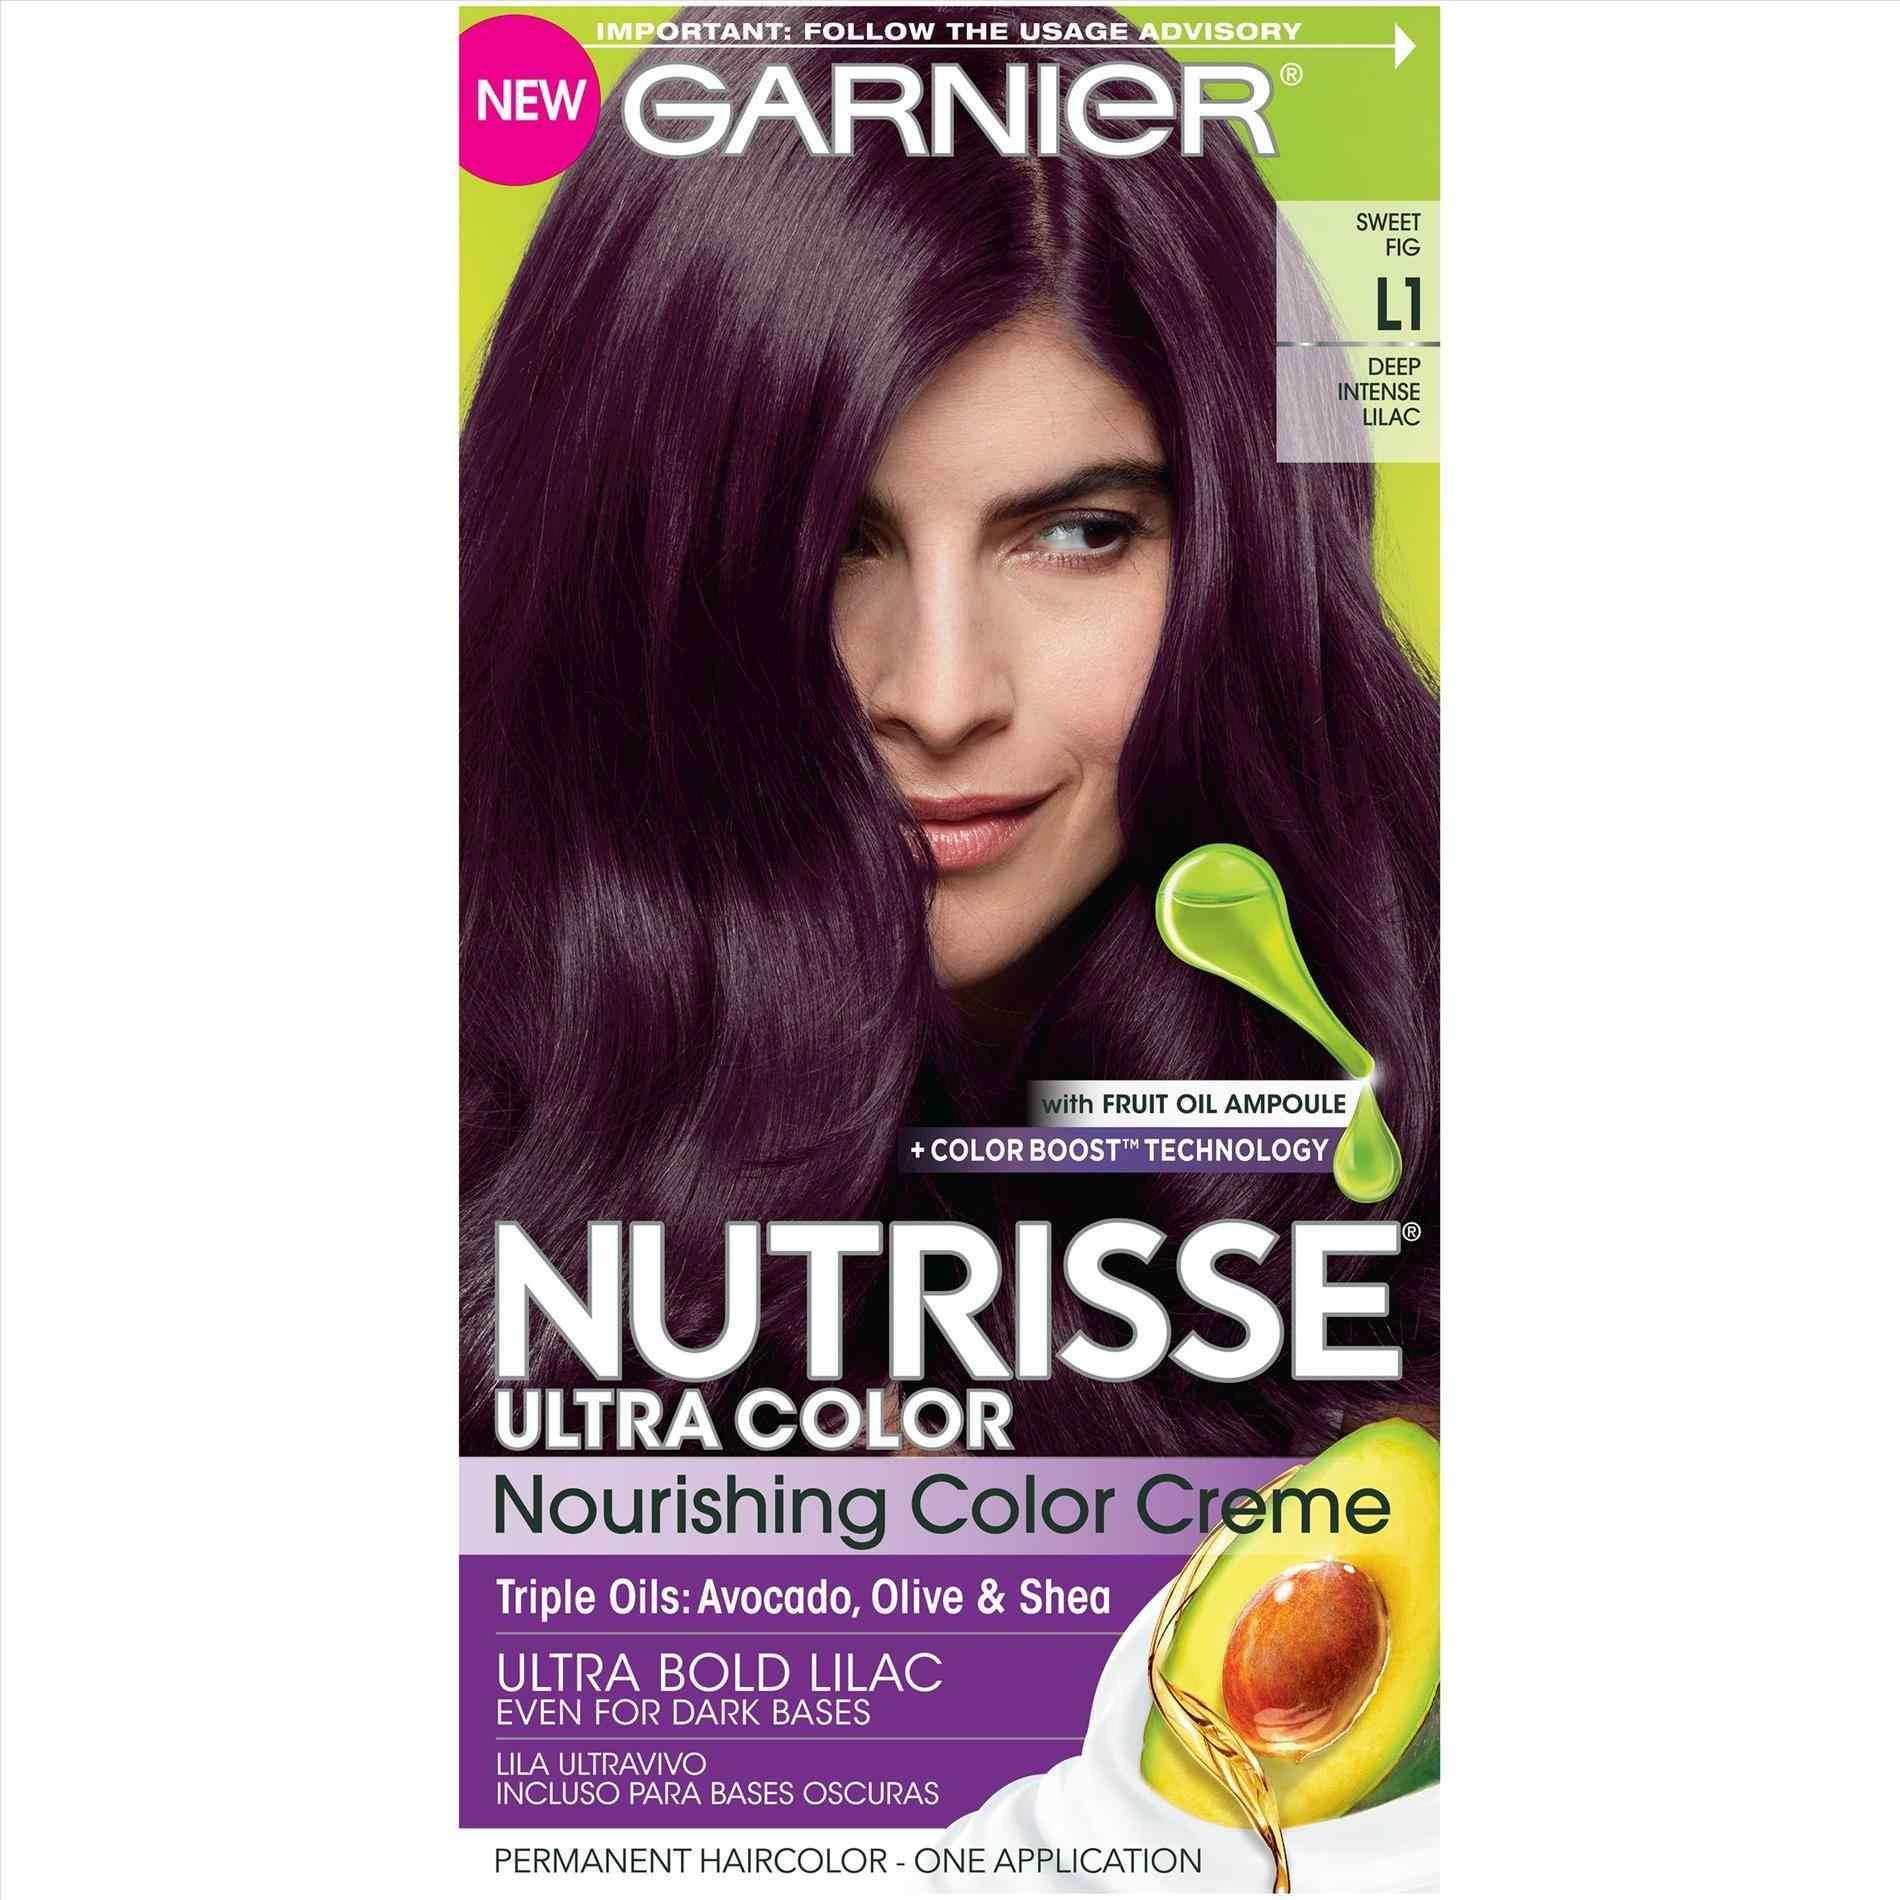 The Best Garnier Nutrisse Commercial 2017 Your Meme Source Pictures